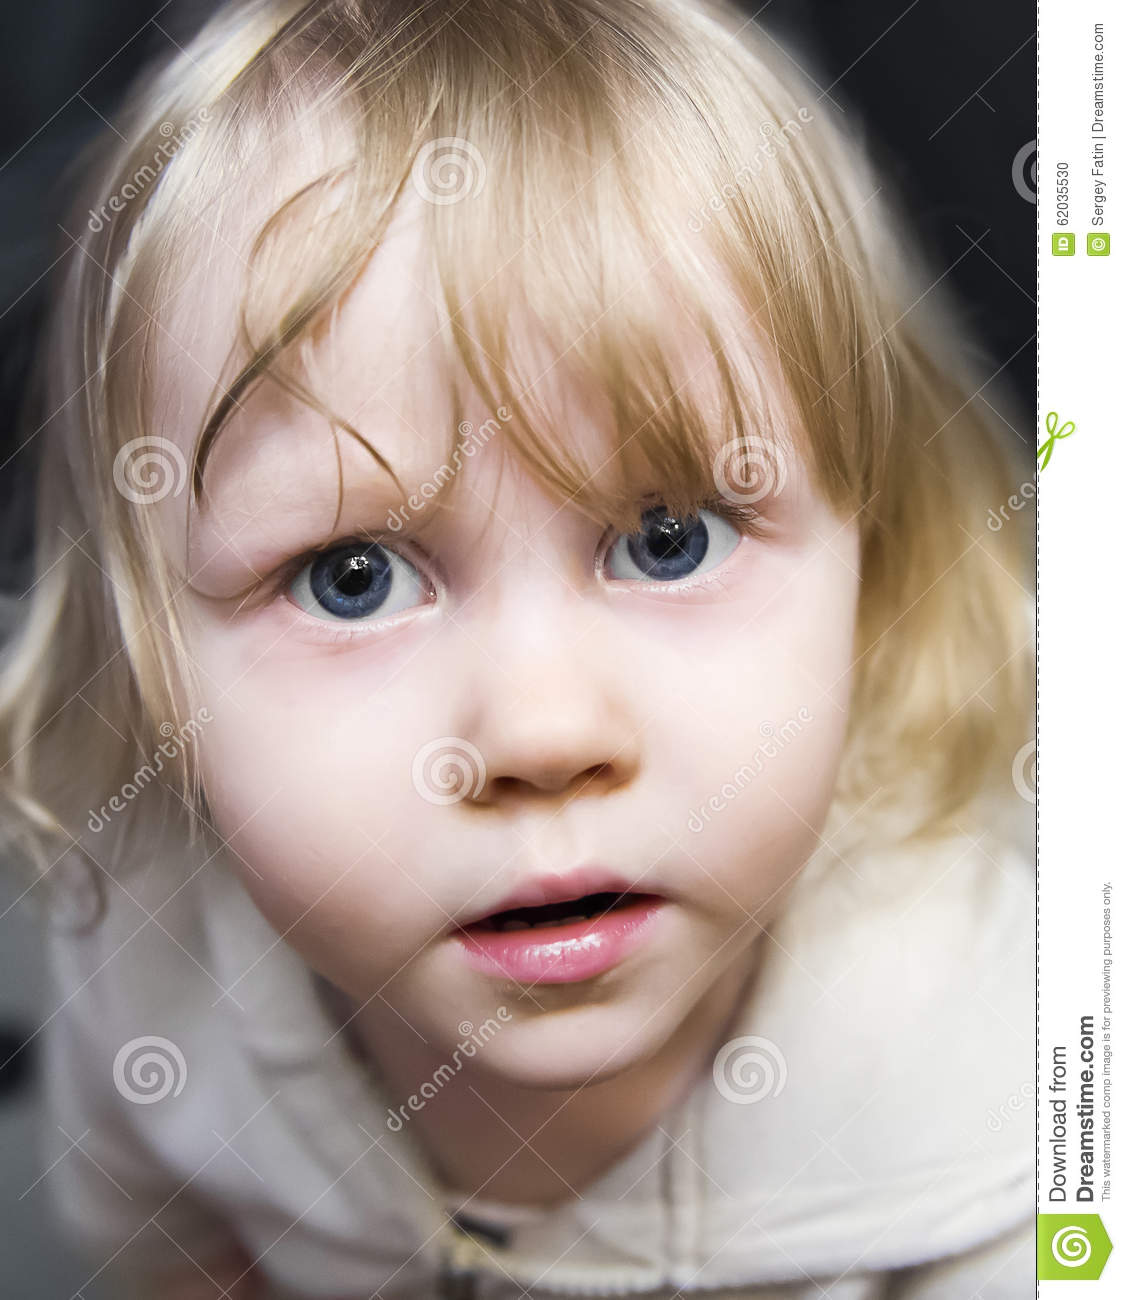 Beautiful Little Girl Bedrooms: Beautiful Little Girl The Blonde With Huge Blue Eyes